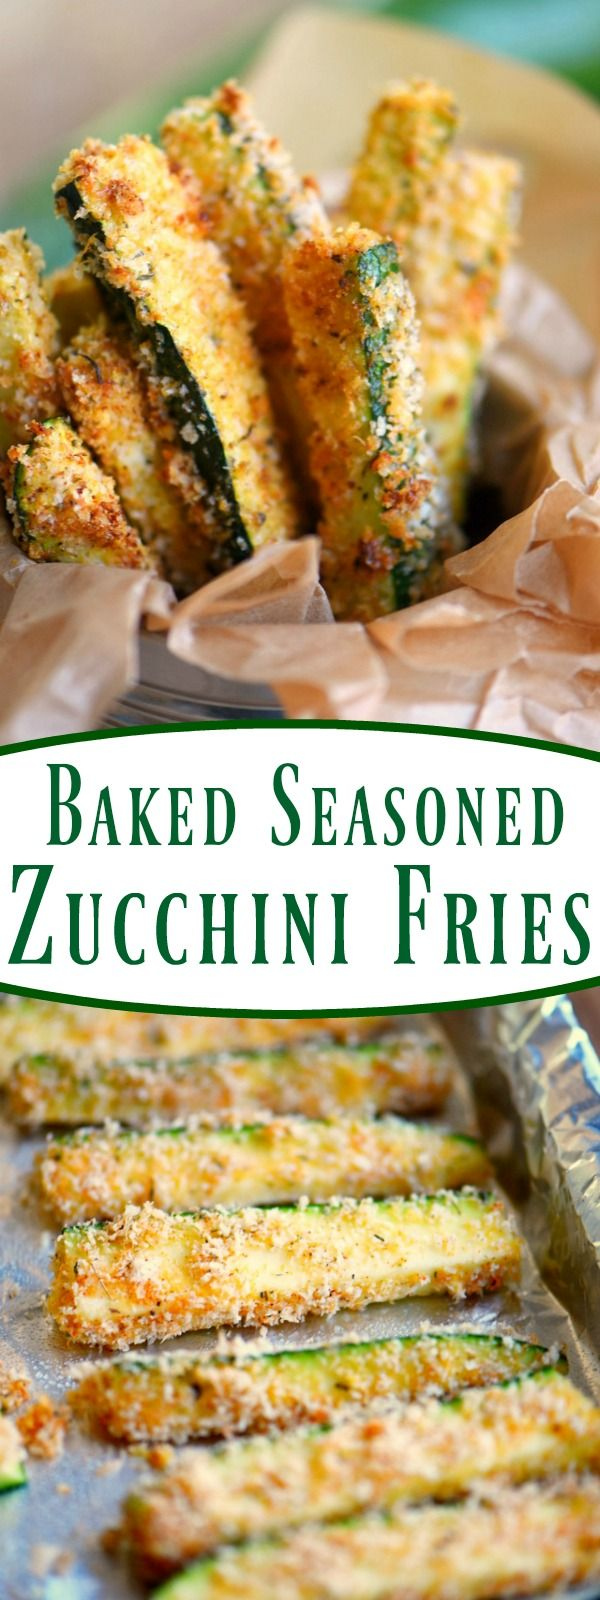 Your new favorite way to eat zucchini! These Baked Seasoned Zucchini Fries are loaded with flavor and baked to a golden crisp! Perfection! Find a gift at - https://ShopItWow.com